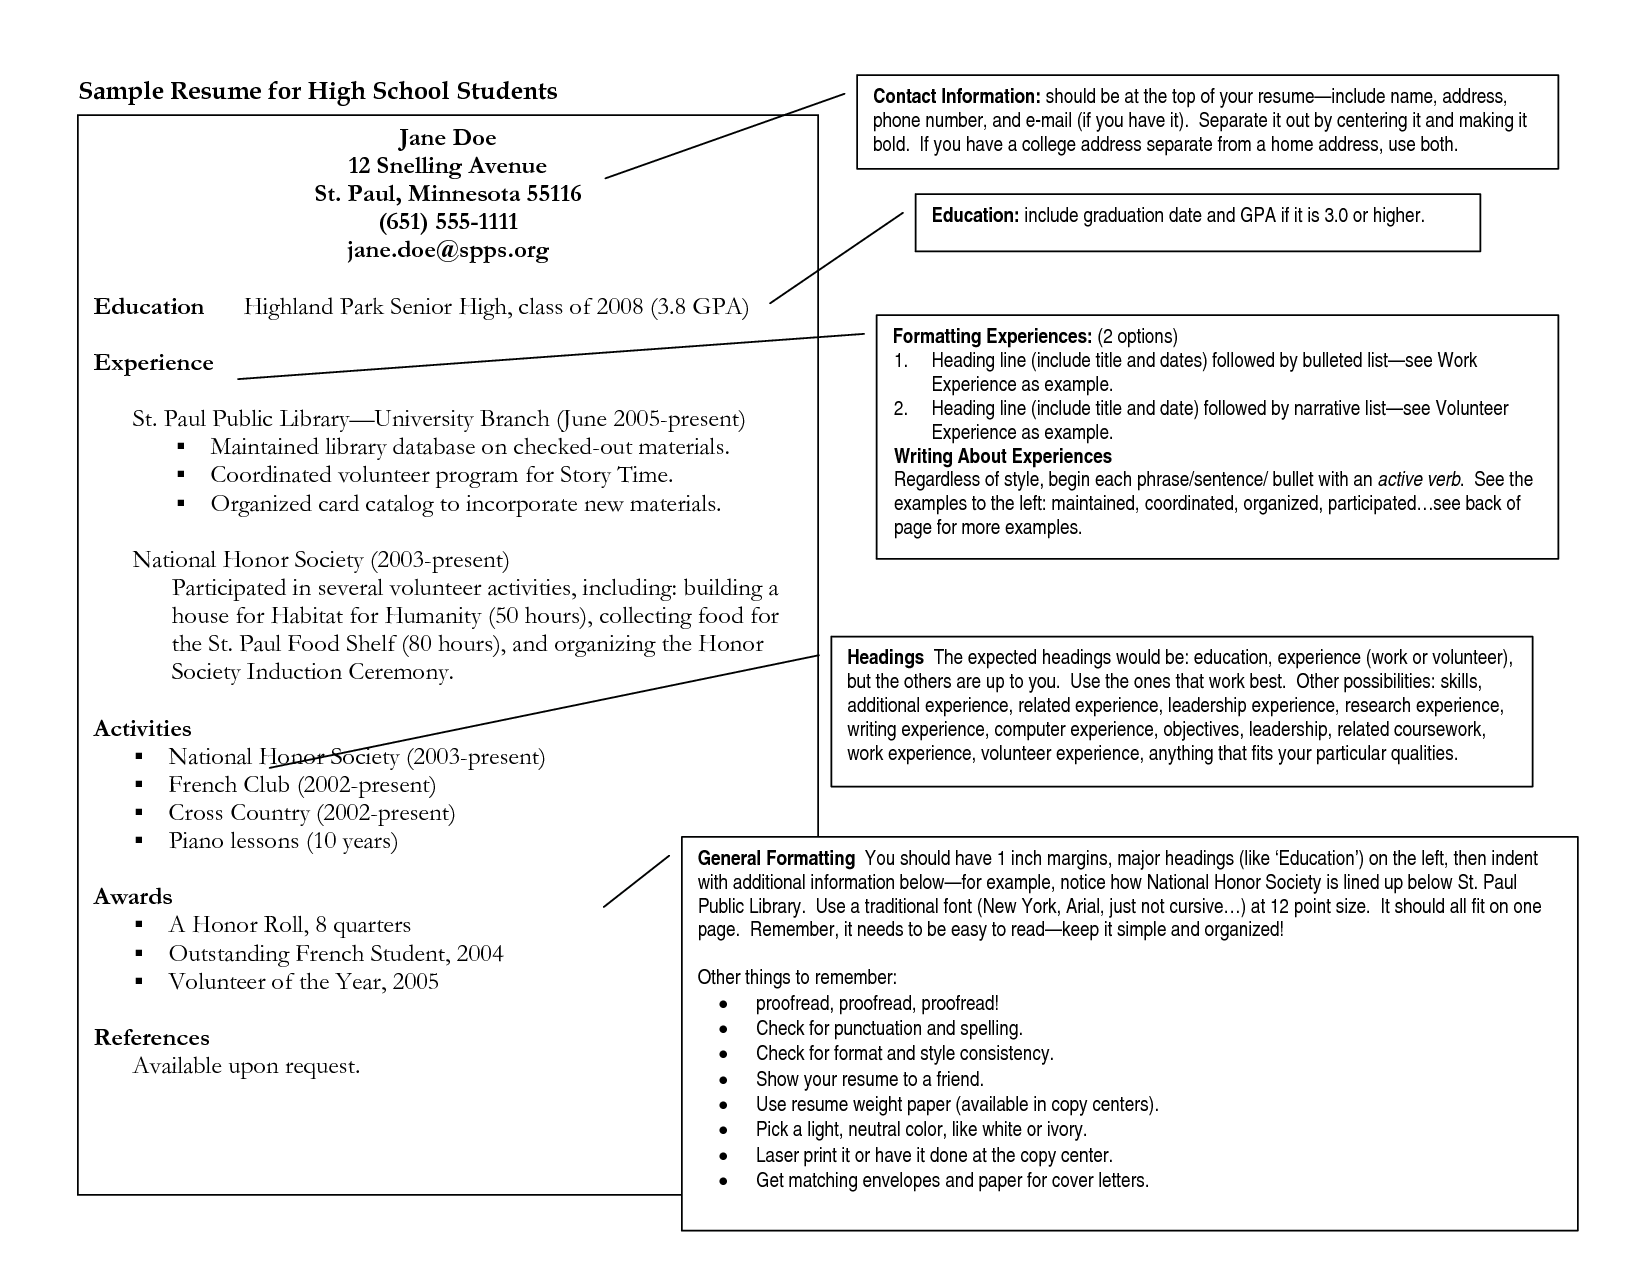 essay samples for high school students school entrance essays – Sample High School Resume